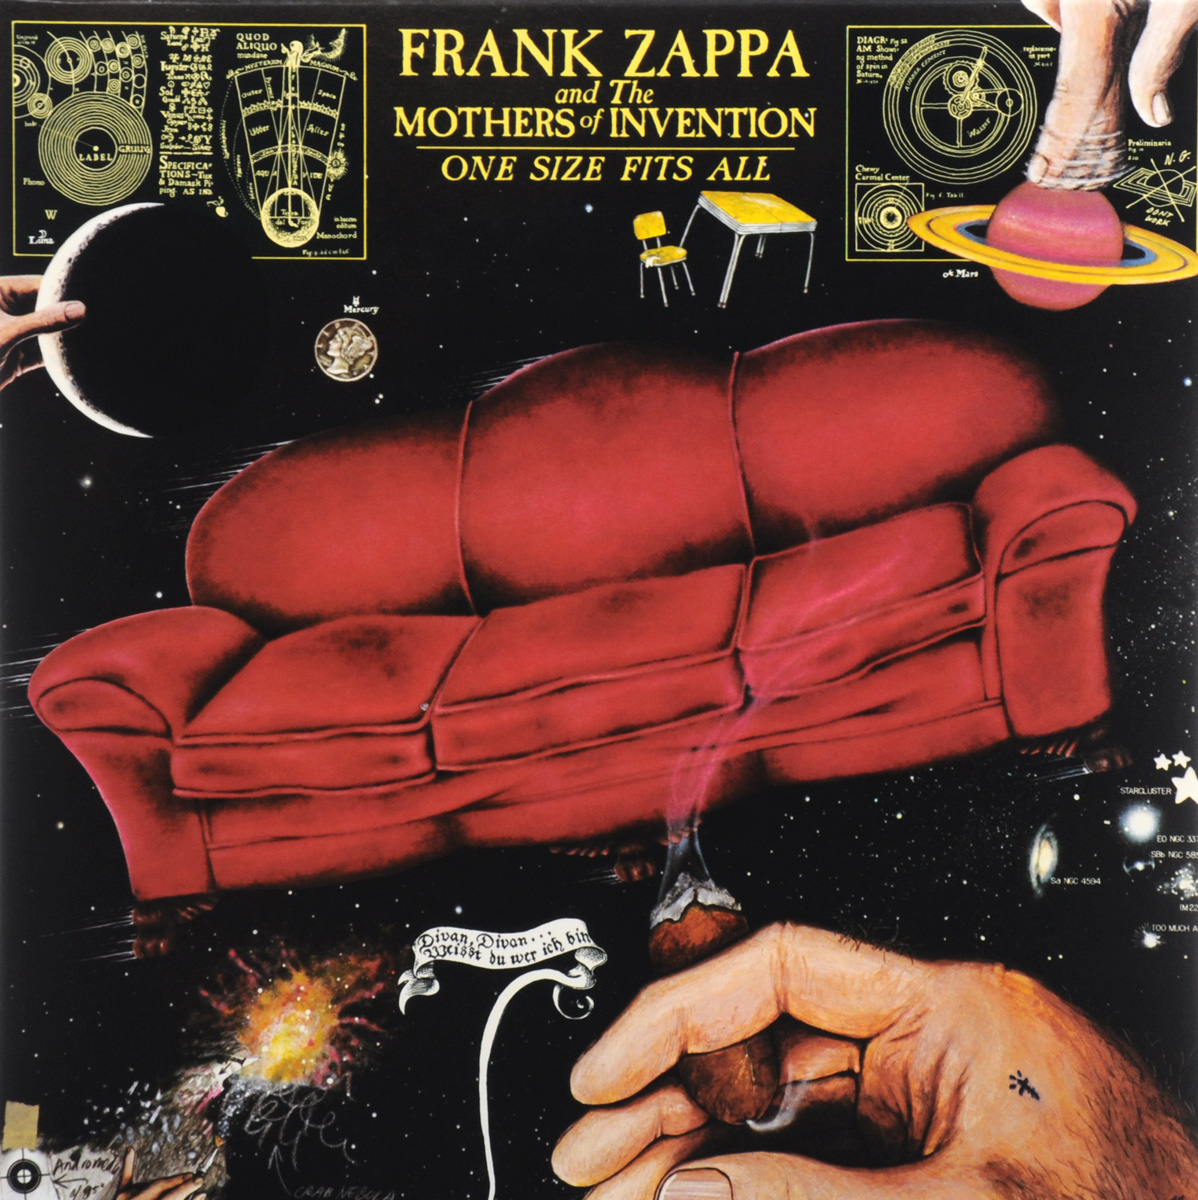 Фрэнк Заппа,The Mothers Of Invention Frank Zappa And The Mothers Of Invention. One Size Fits All (LP) frank lloyd wright and the meaning of materials